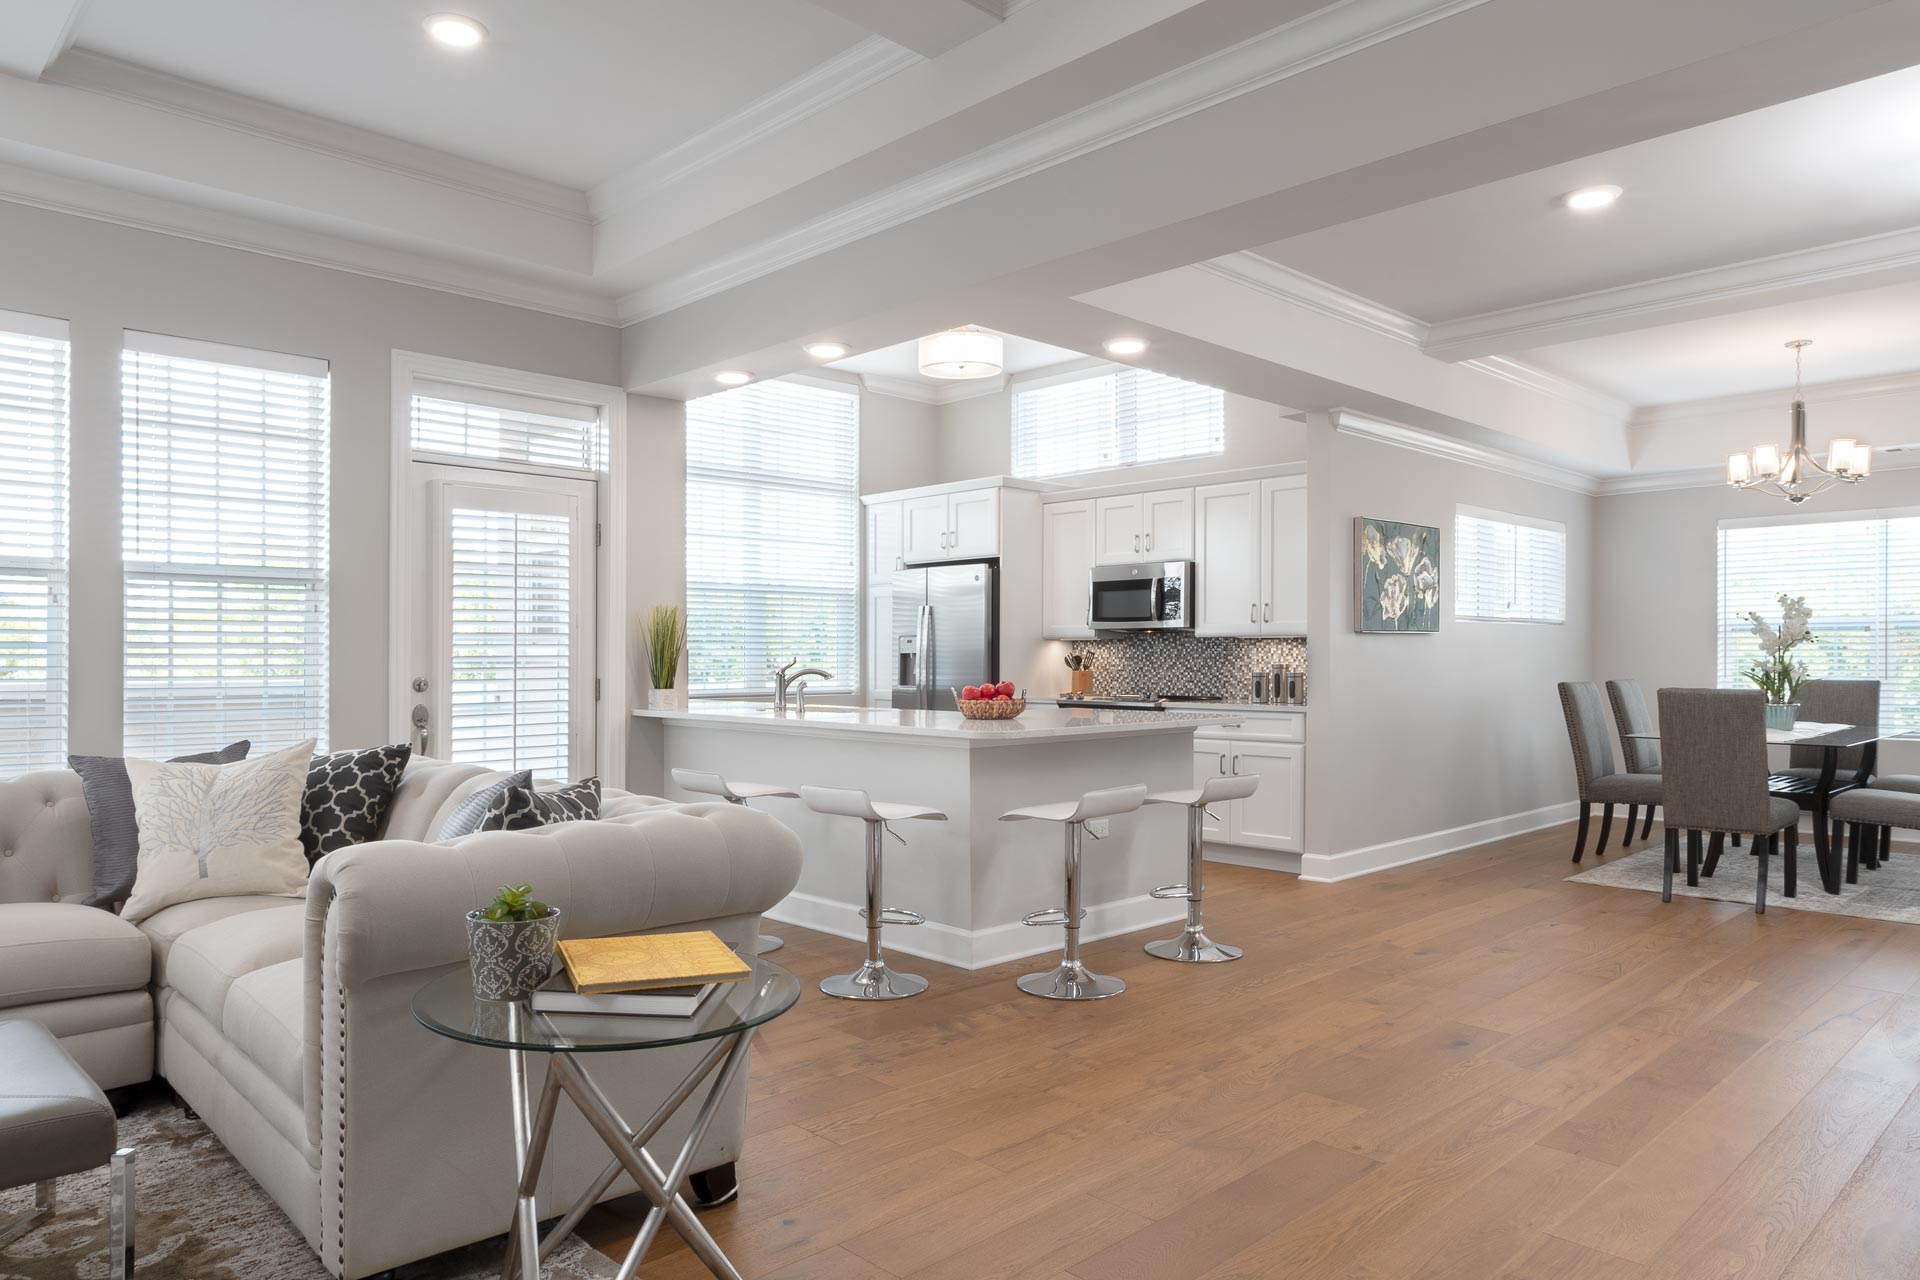 Wyndamere Senior Living - OPen concept kitchen, living room, and dining room